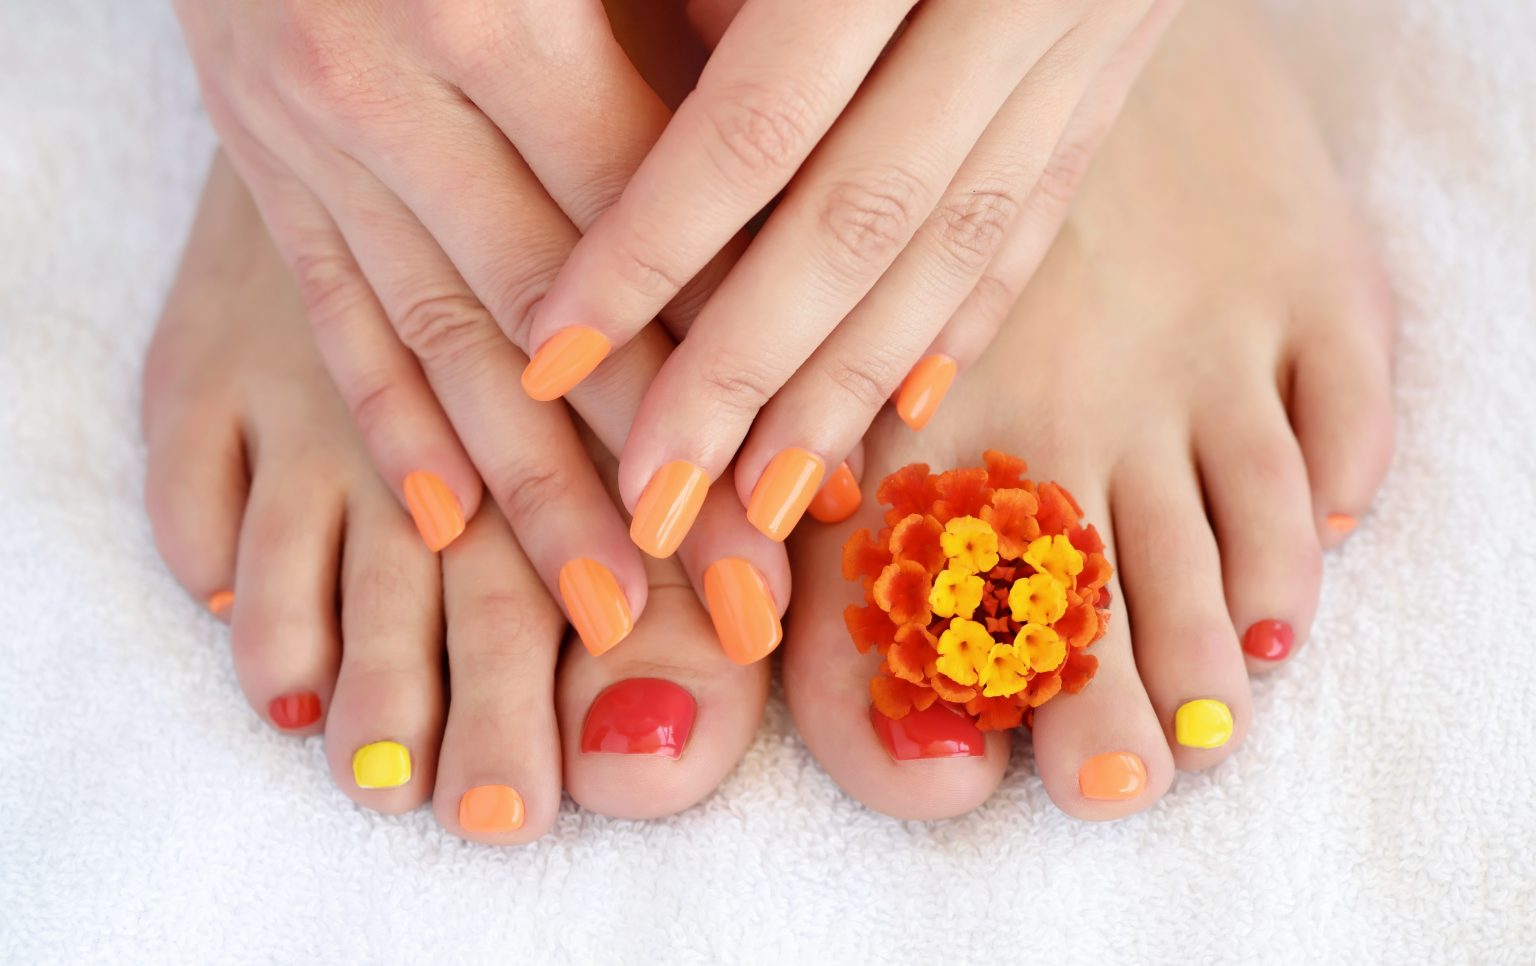 Female feet and hands with colorful manicure with red-orange flowers. Soft focus image